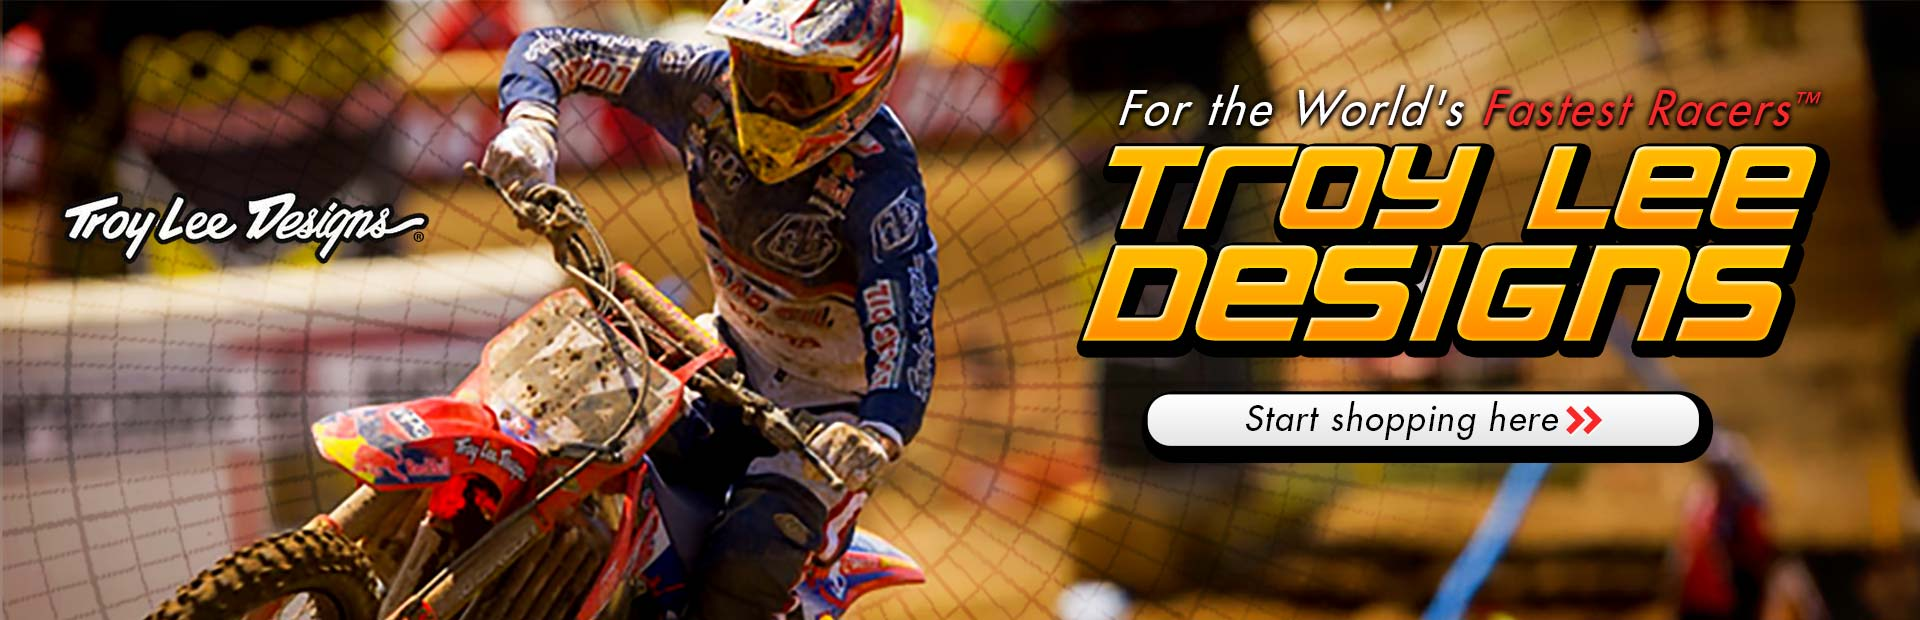 Click here to shop Troy Lee Designs.